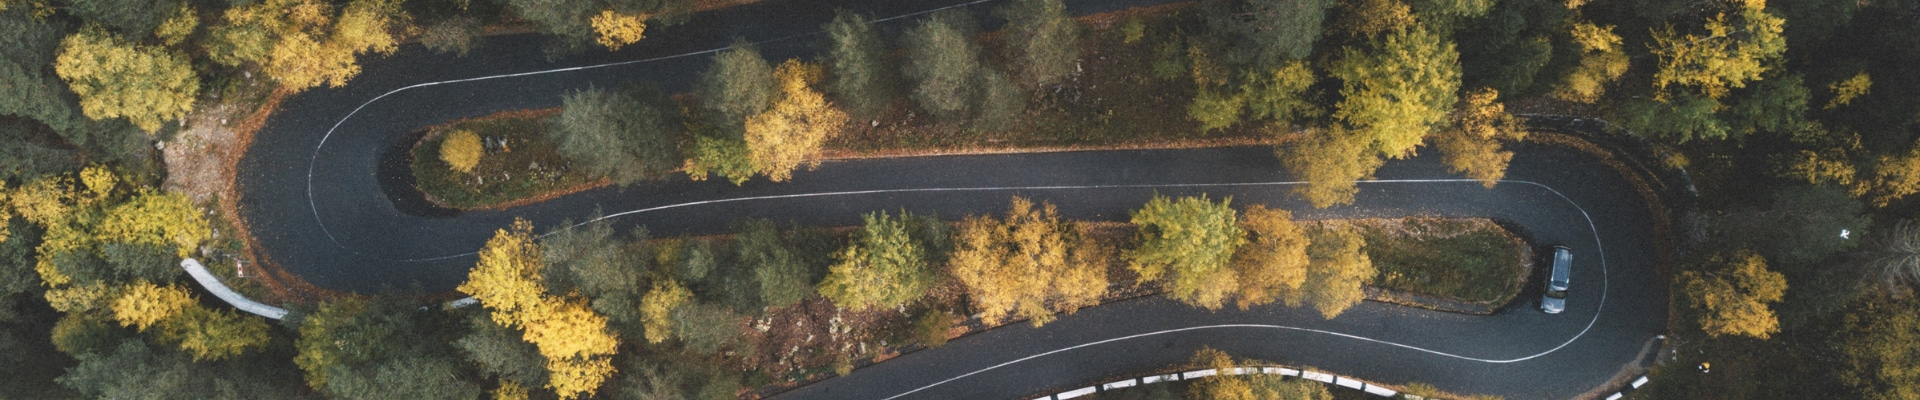 Aerial view of a used car as it drives down a winding curvy road through a forest